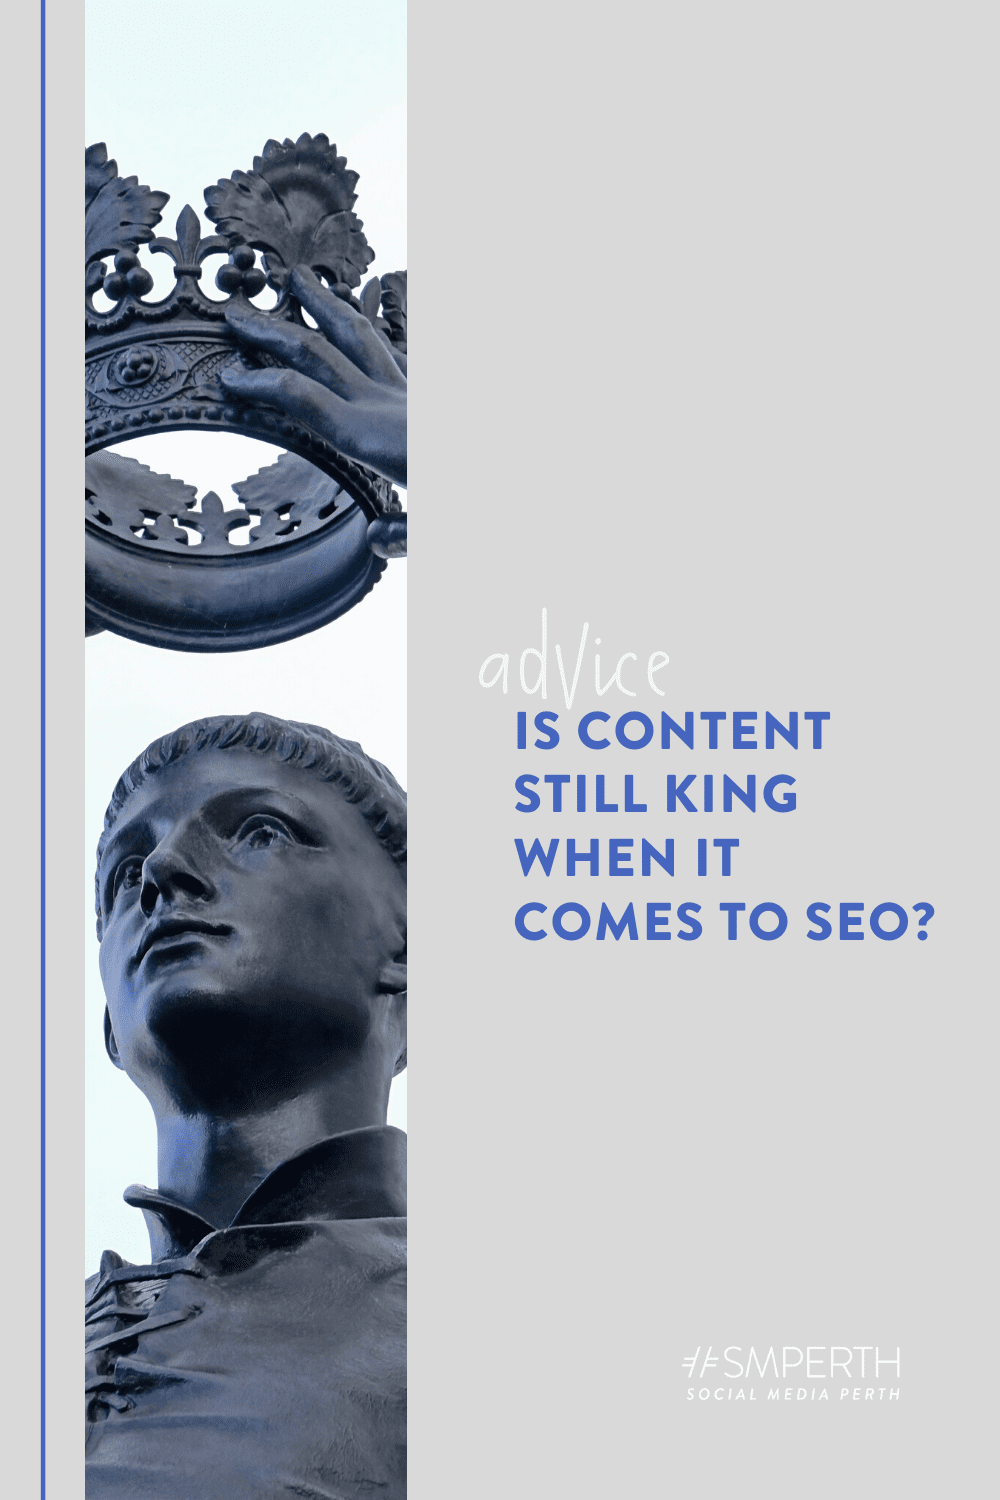 Content and SEO: is content still king?